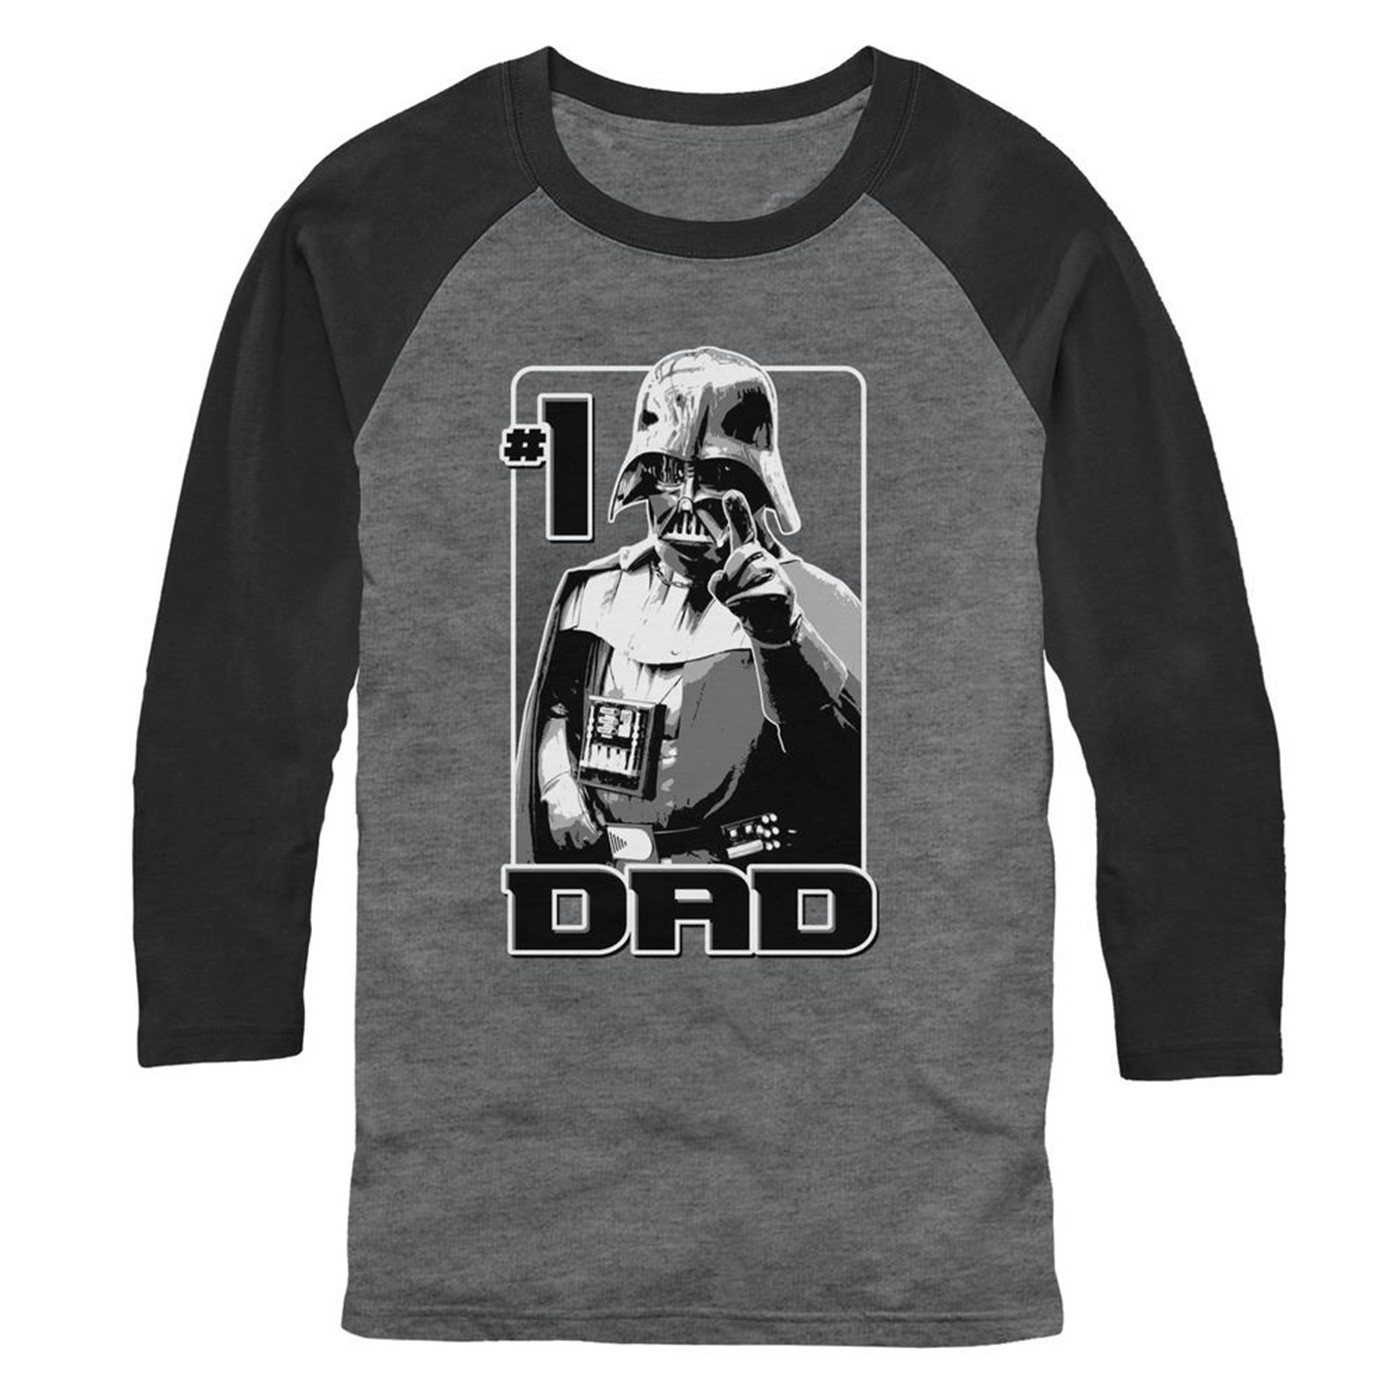 Vader Number One Dad 3/4 Sleeve Baseball T-Shirt